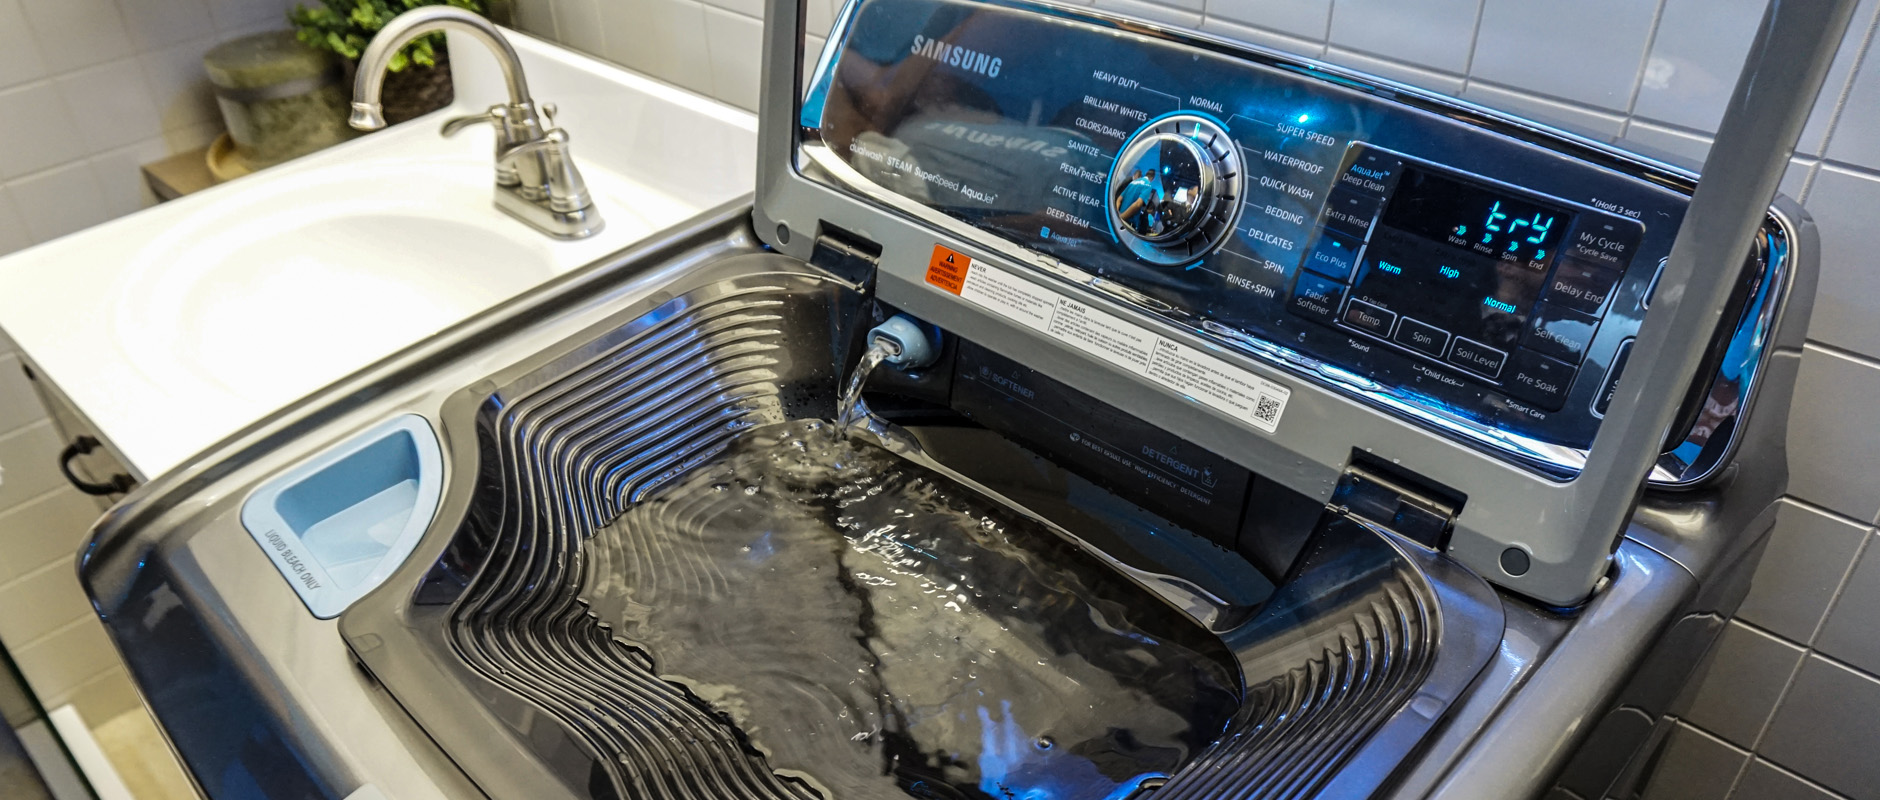 samsung washing machine up